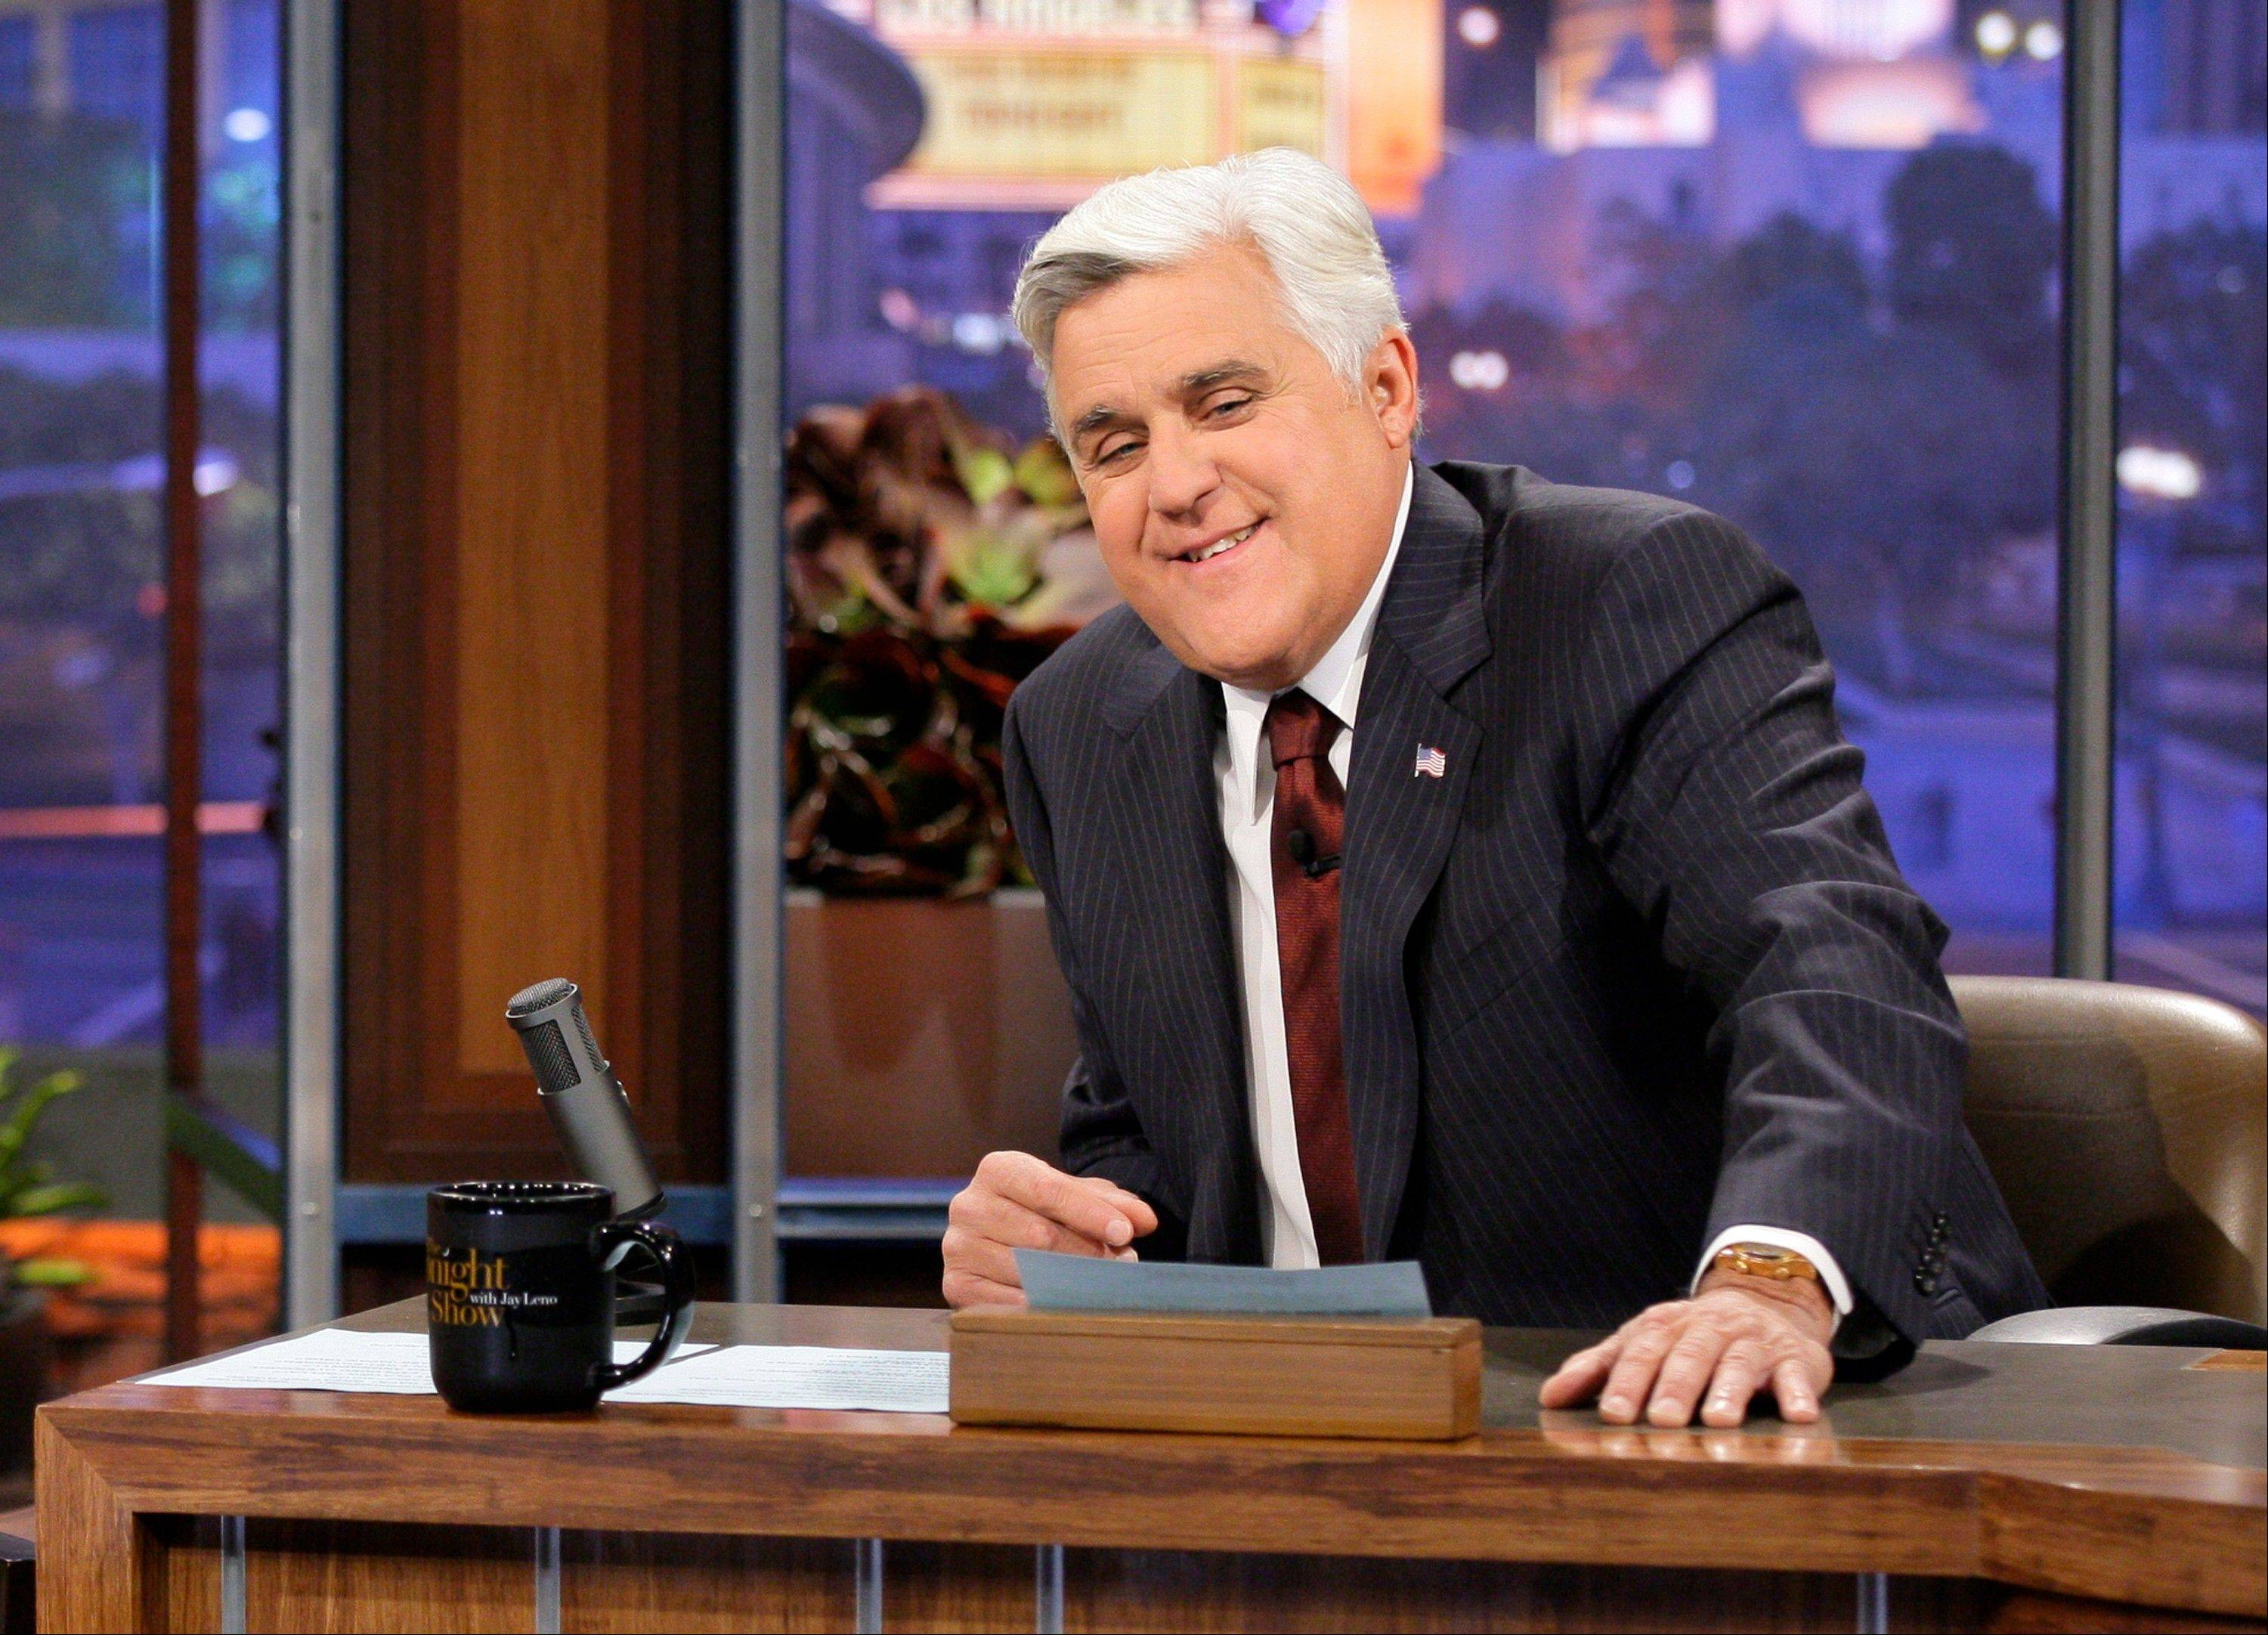 It�s official: Jimmy Fallon is replacing Jay Leno as the host of �The Tonight Show� in spring 2014. NBC says that Jimmy Fallon has tried judiciously to make sure Jay Leno was on board with the move.